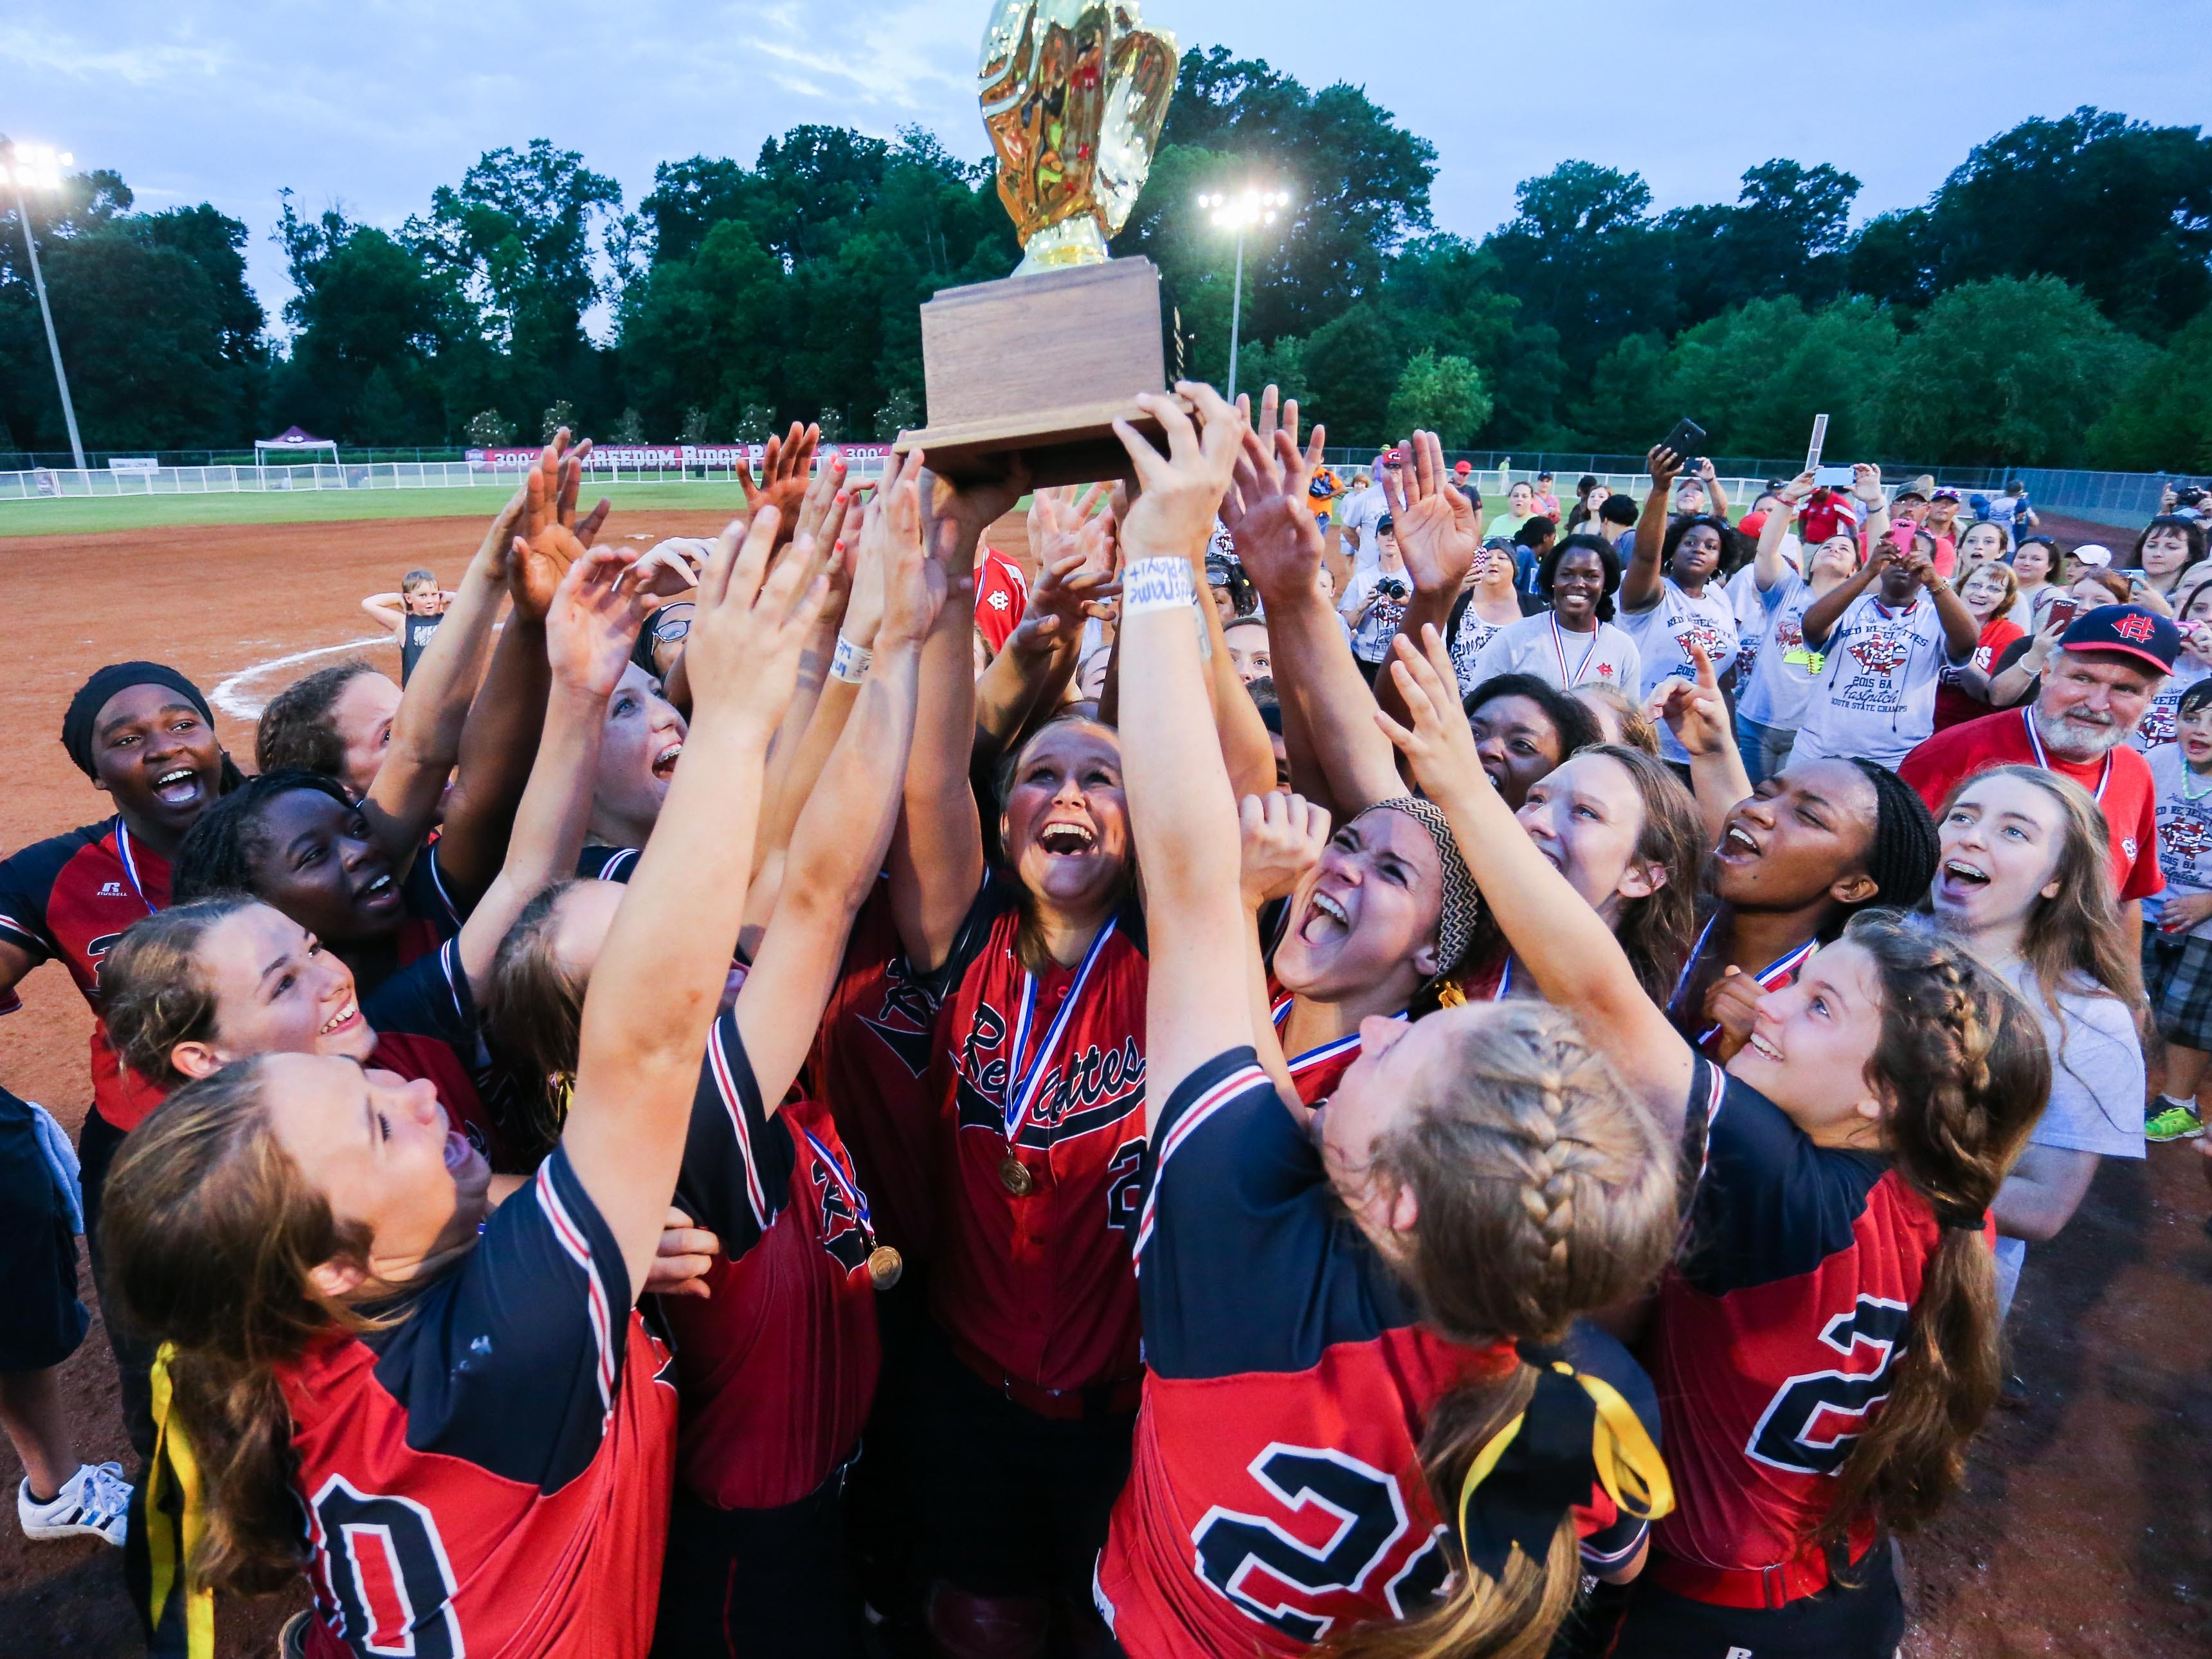 Harrison Central players hoist the trophy after their 9-1 win over Madison Central in the MHSAA Class 6A softball championship in Ridgeland on Saturday.